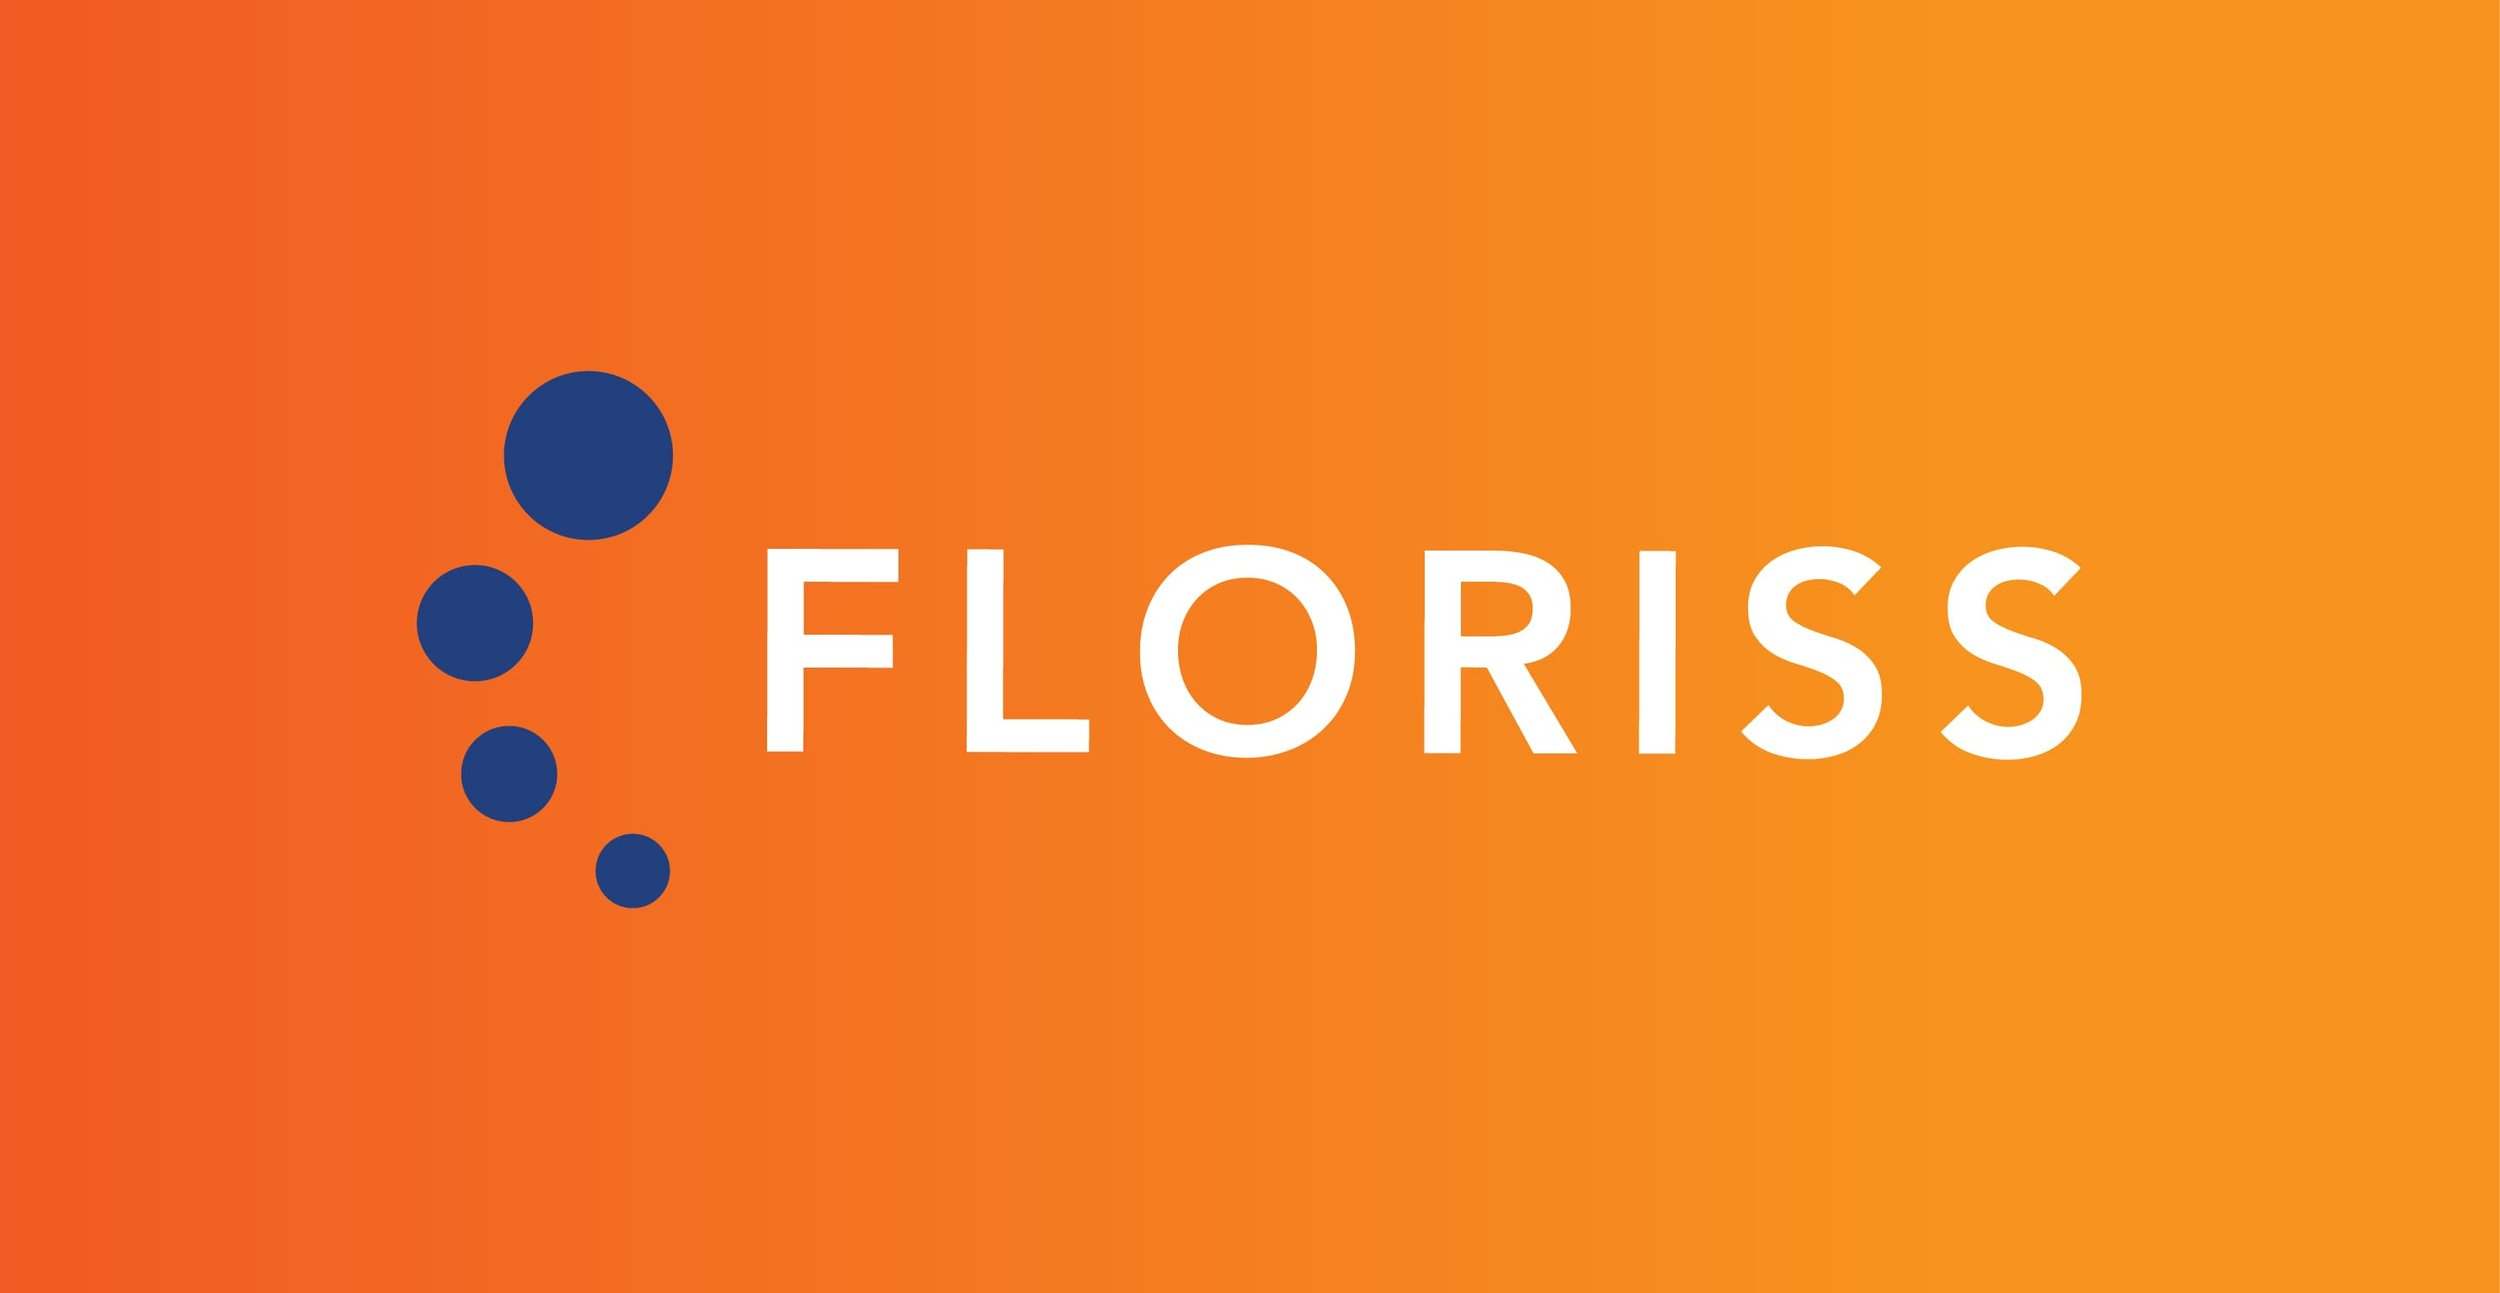 Floriss Group Logo Primary Orange Background